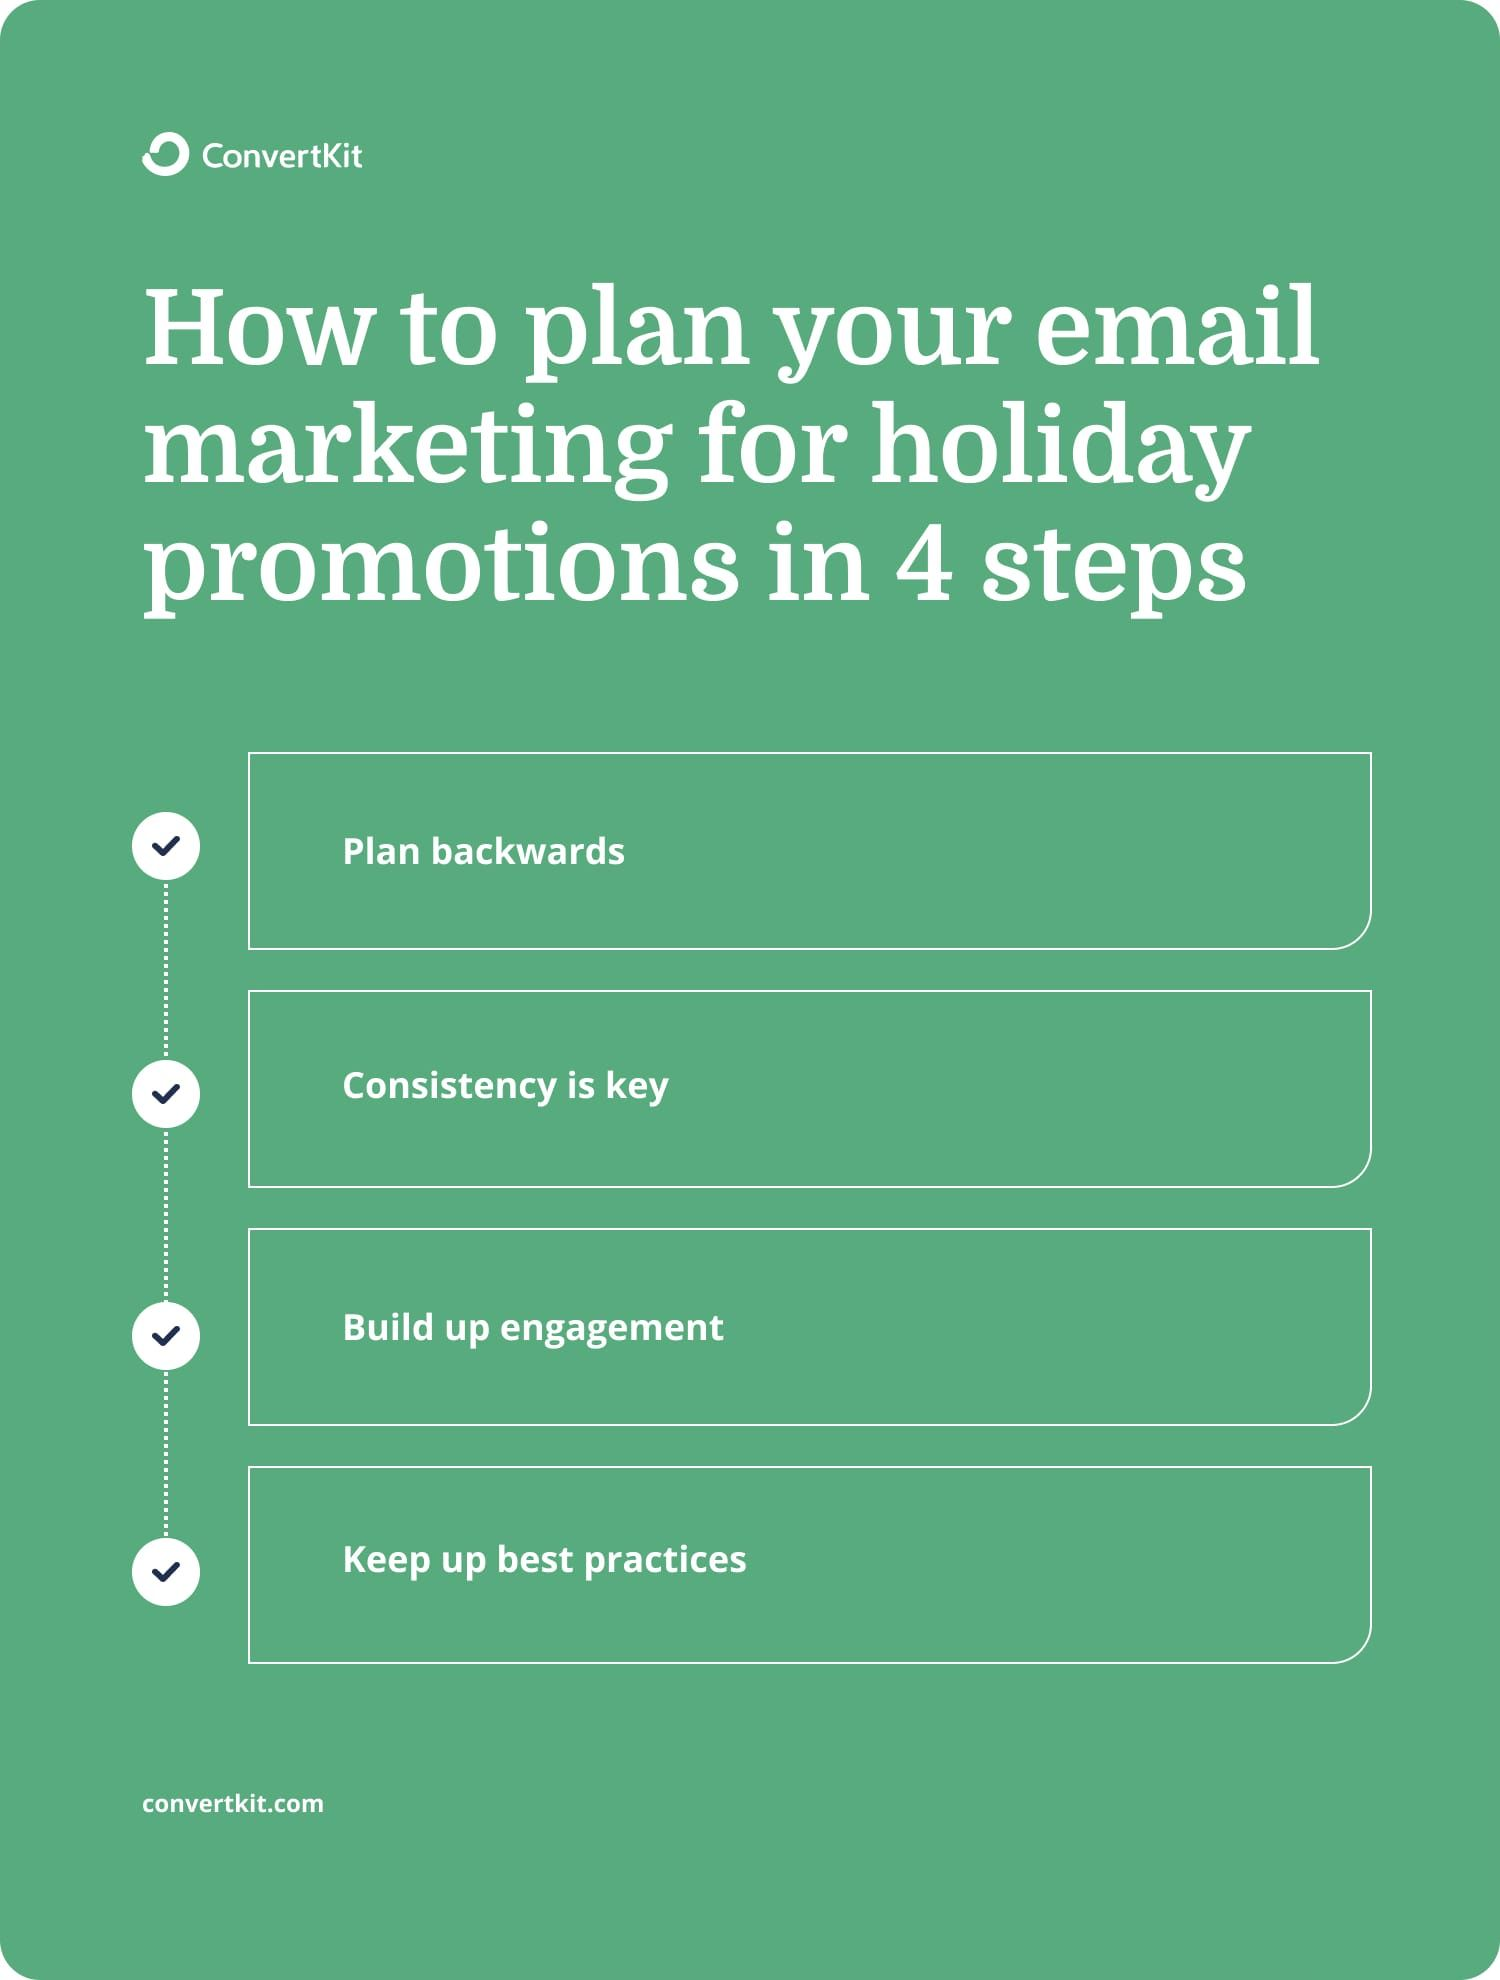 4 steps to easily plan your email marketing for holiday